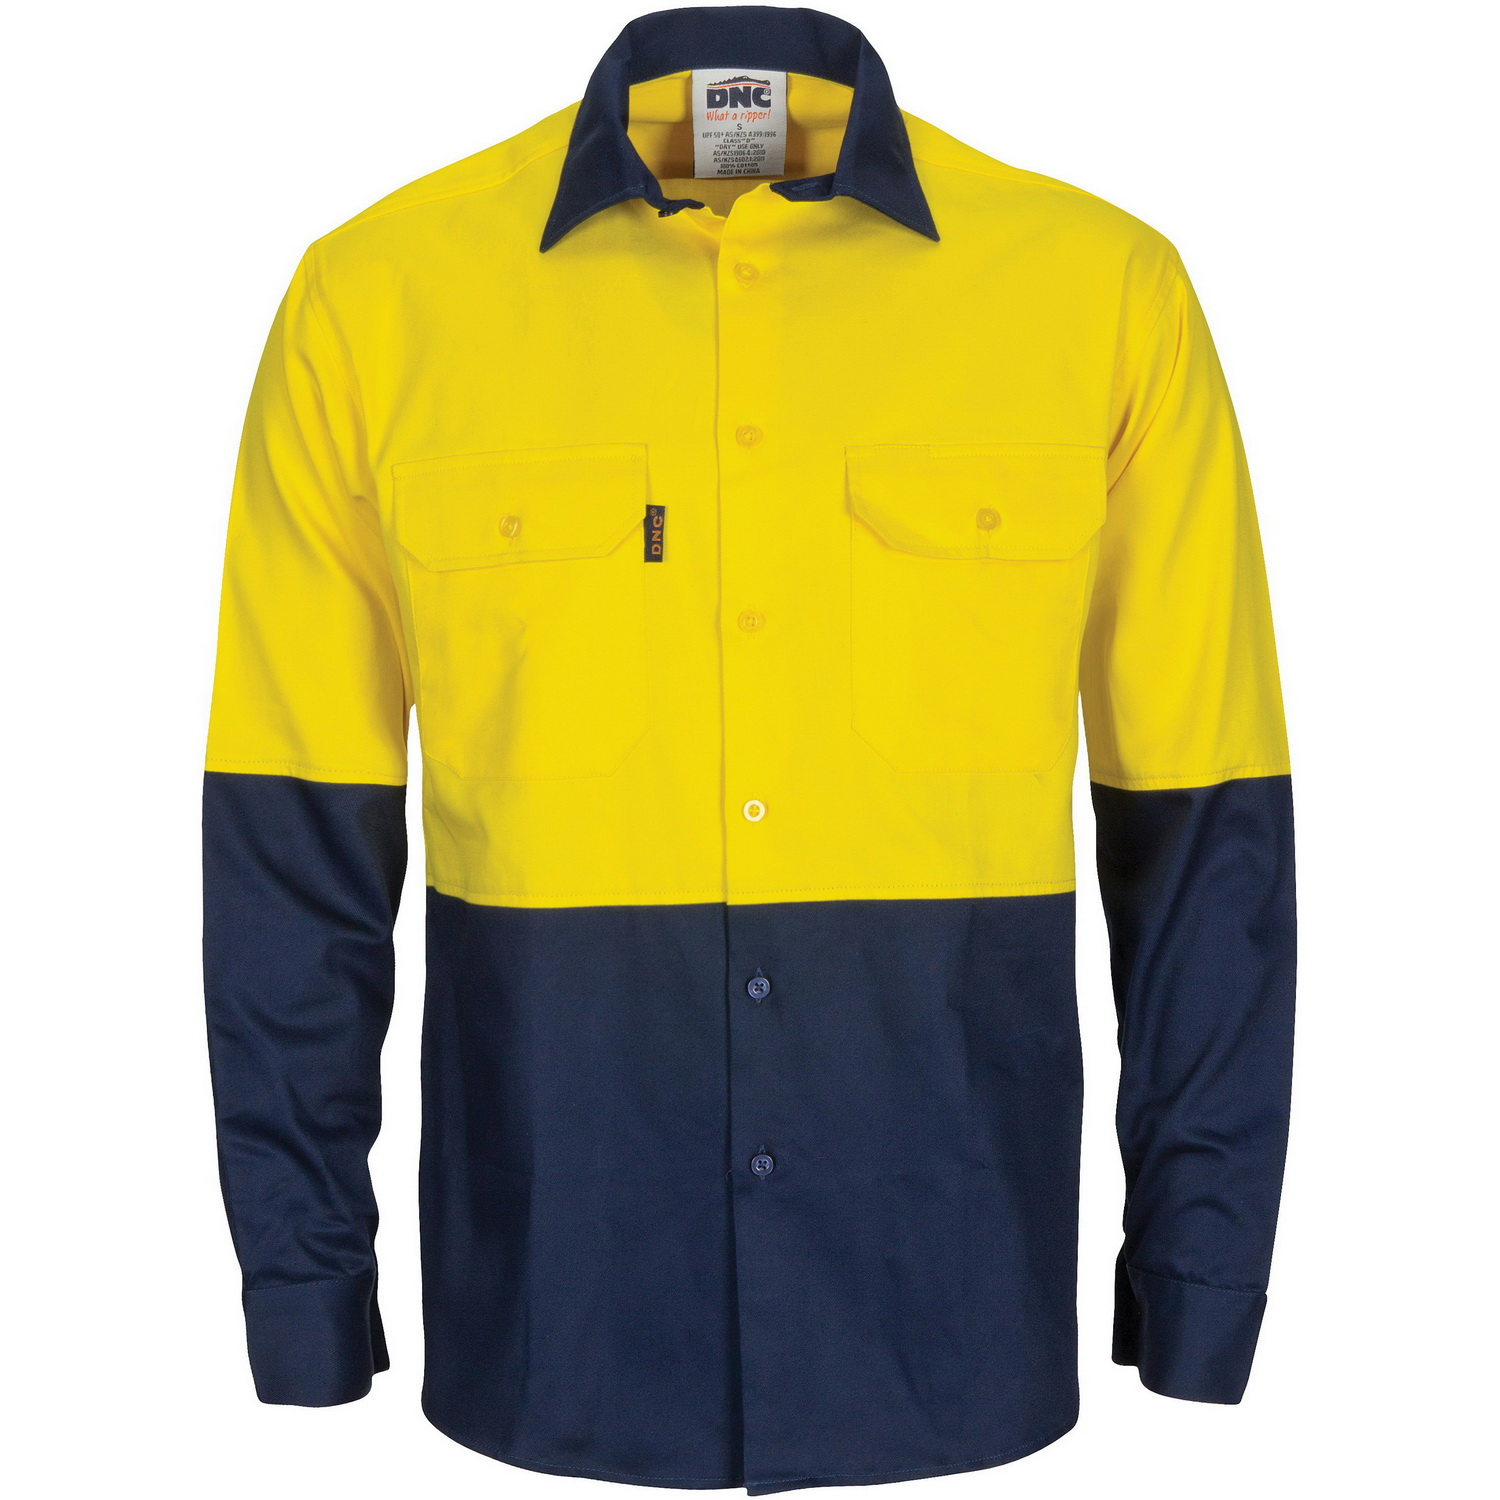 HiVis L/W Cool-Breeze T2 Vertical Vented Cotton Shirt with Gusset Sleeves - Long Sleeve